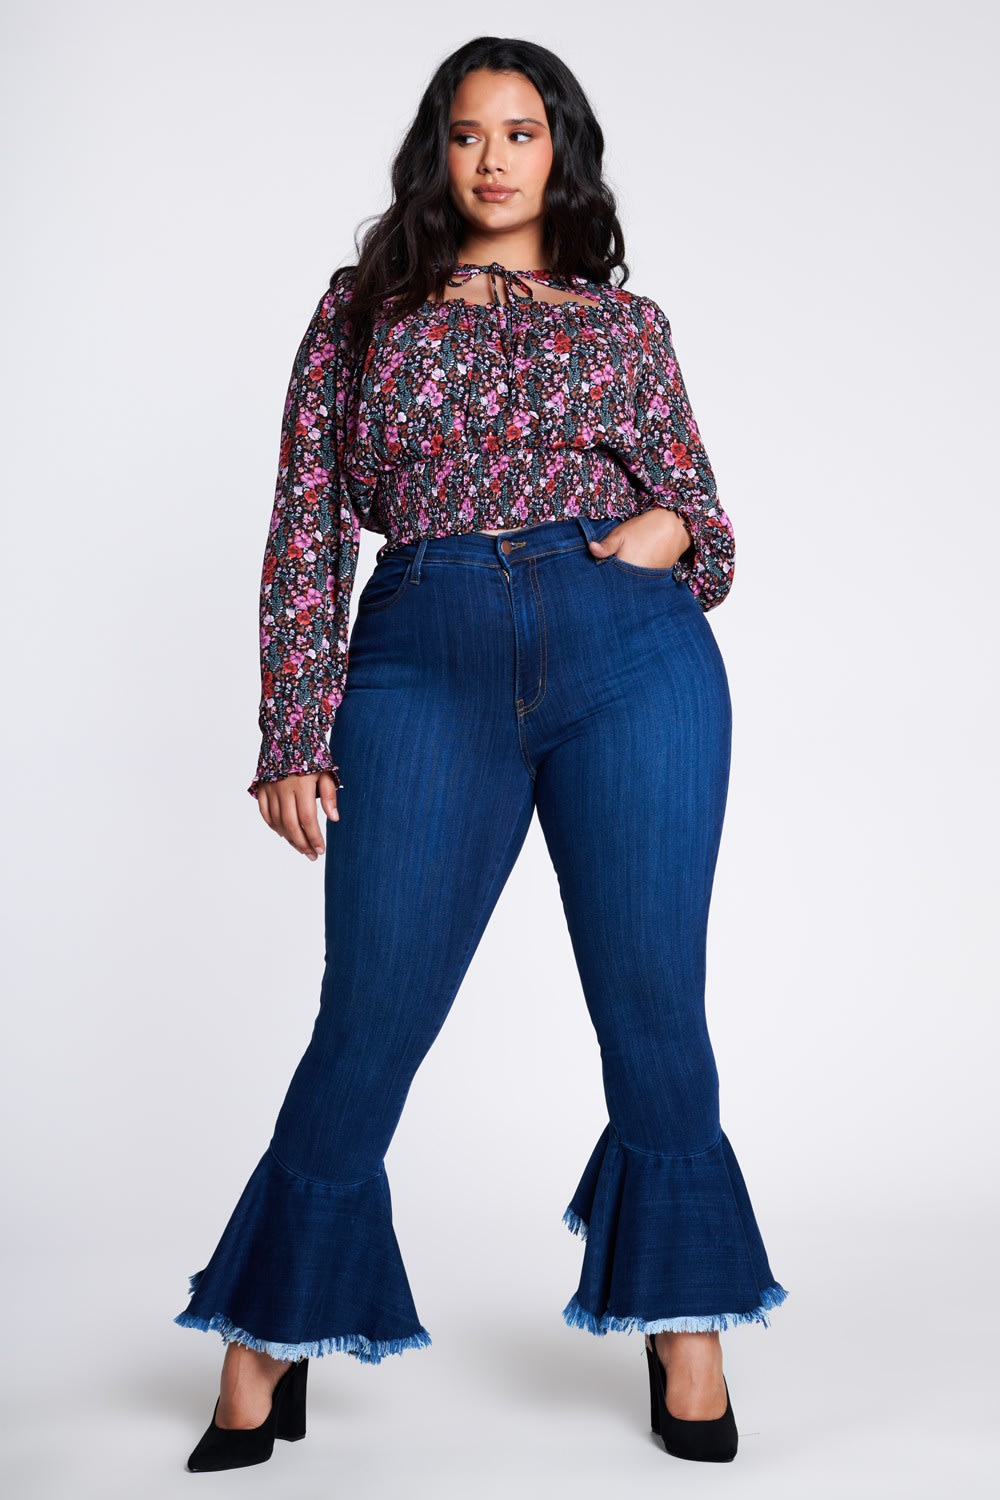 Ruffle Bell-Bottom Jeans - Medium stone - Front